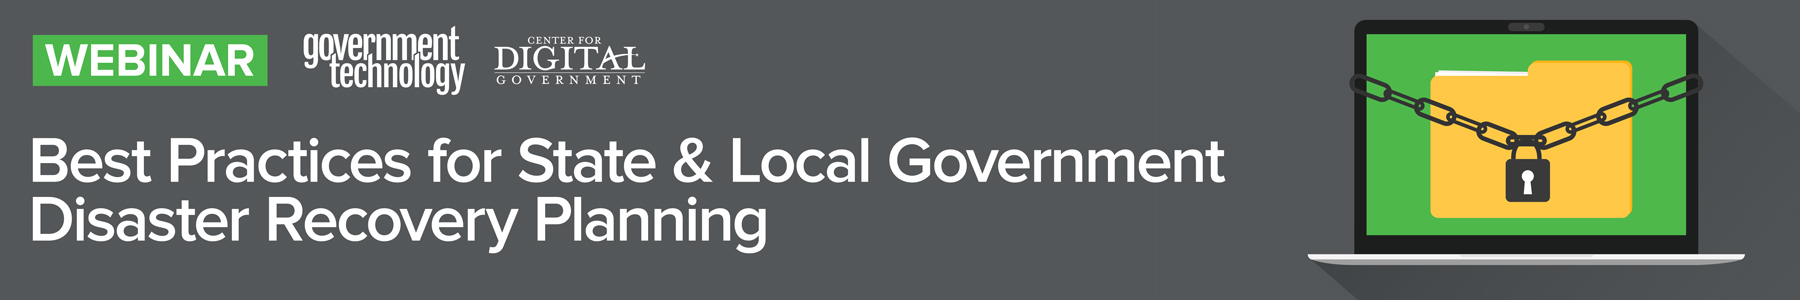 Best Practices for State and Local Government Disaster Recovery Planning